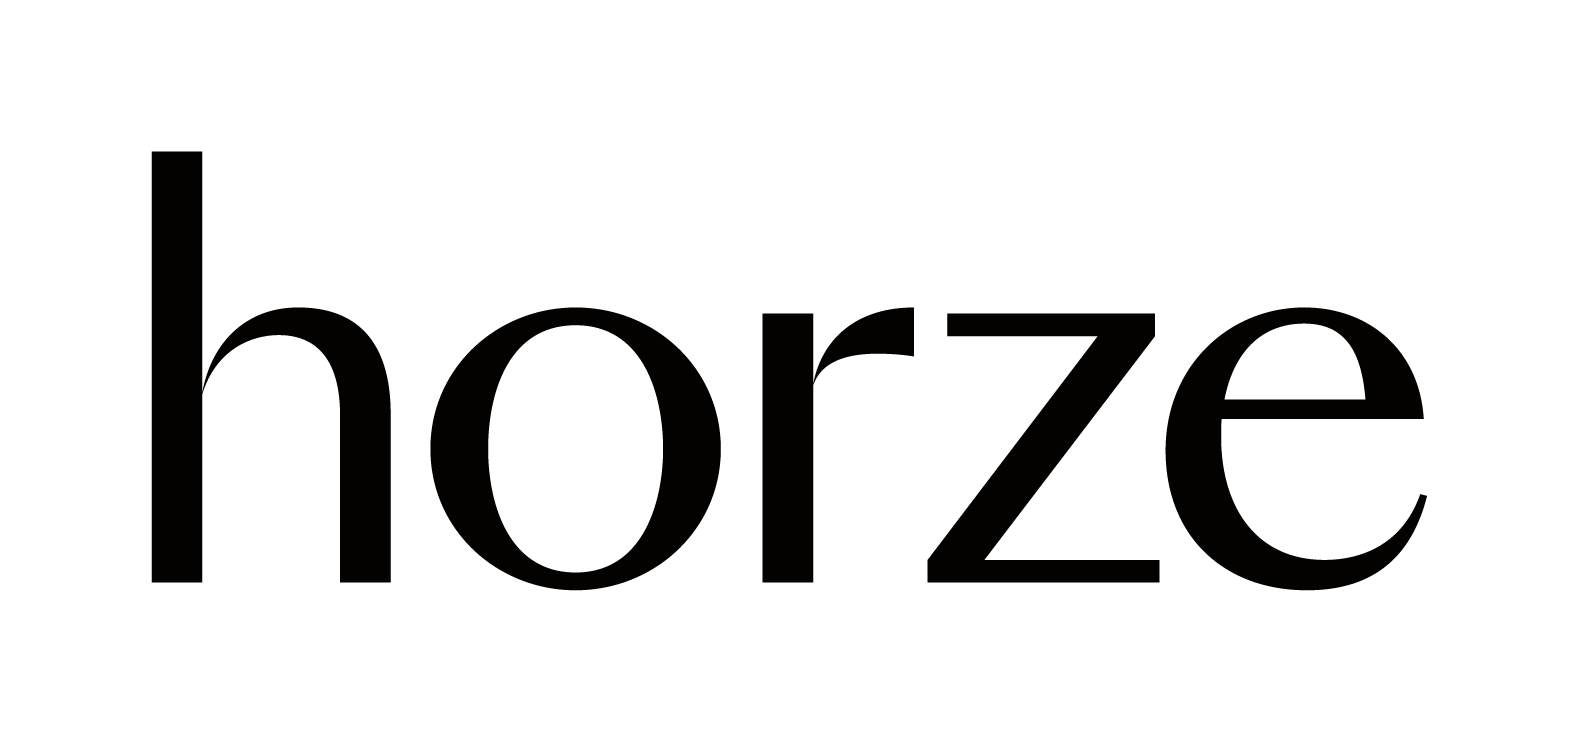 Giftige Parfums Liste Horze Nl Reviews Lees Klantreviews Over Horze Nl